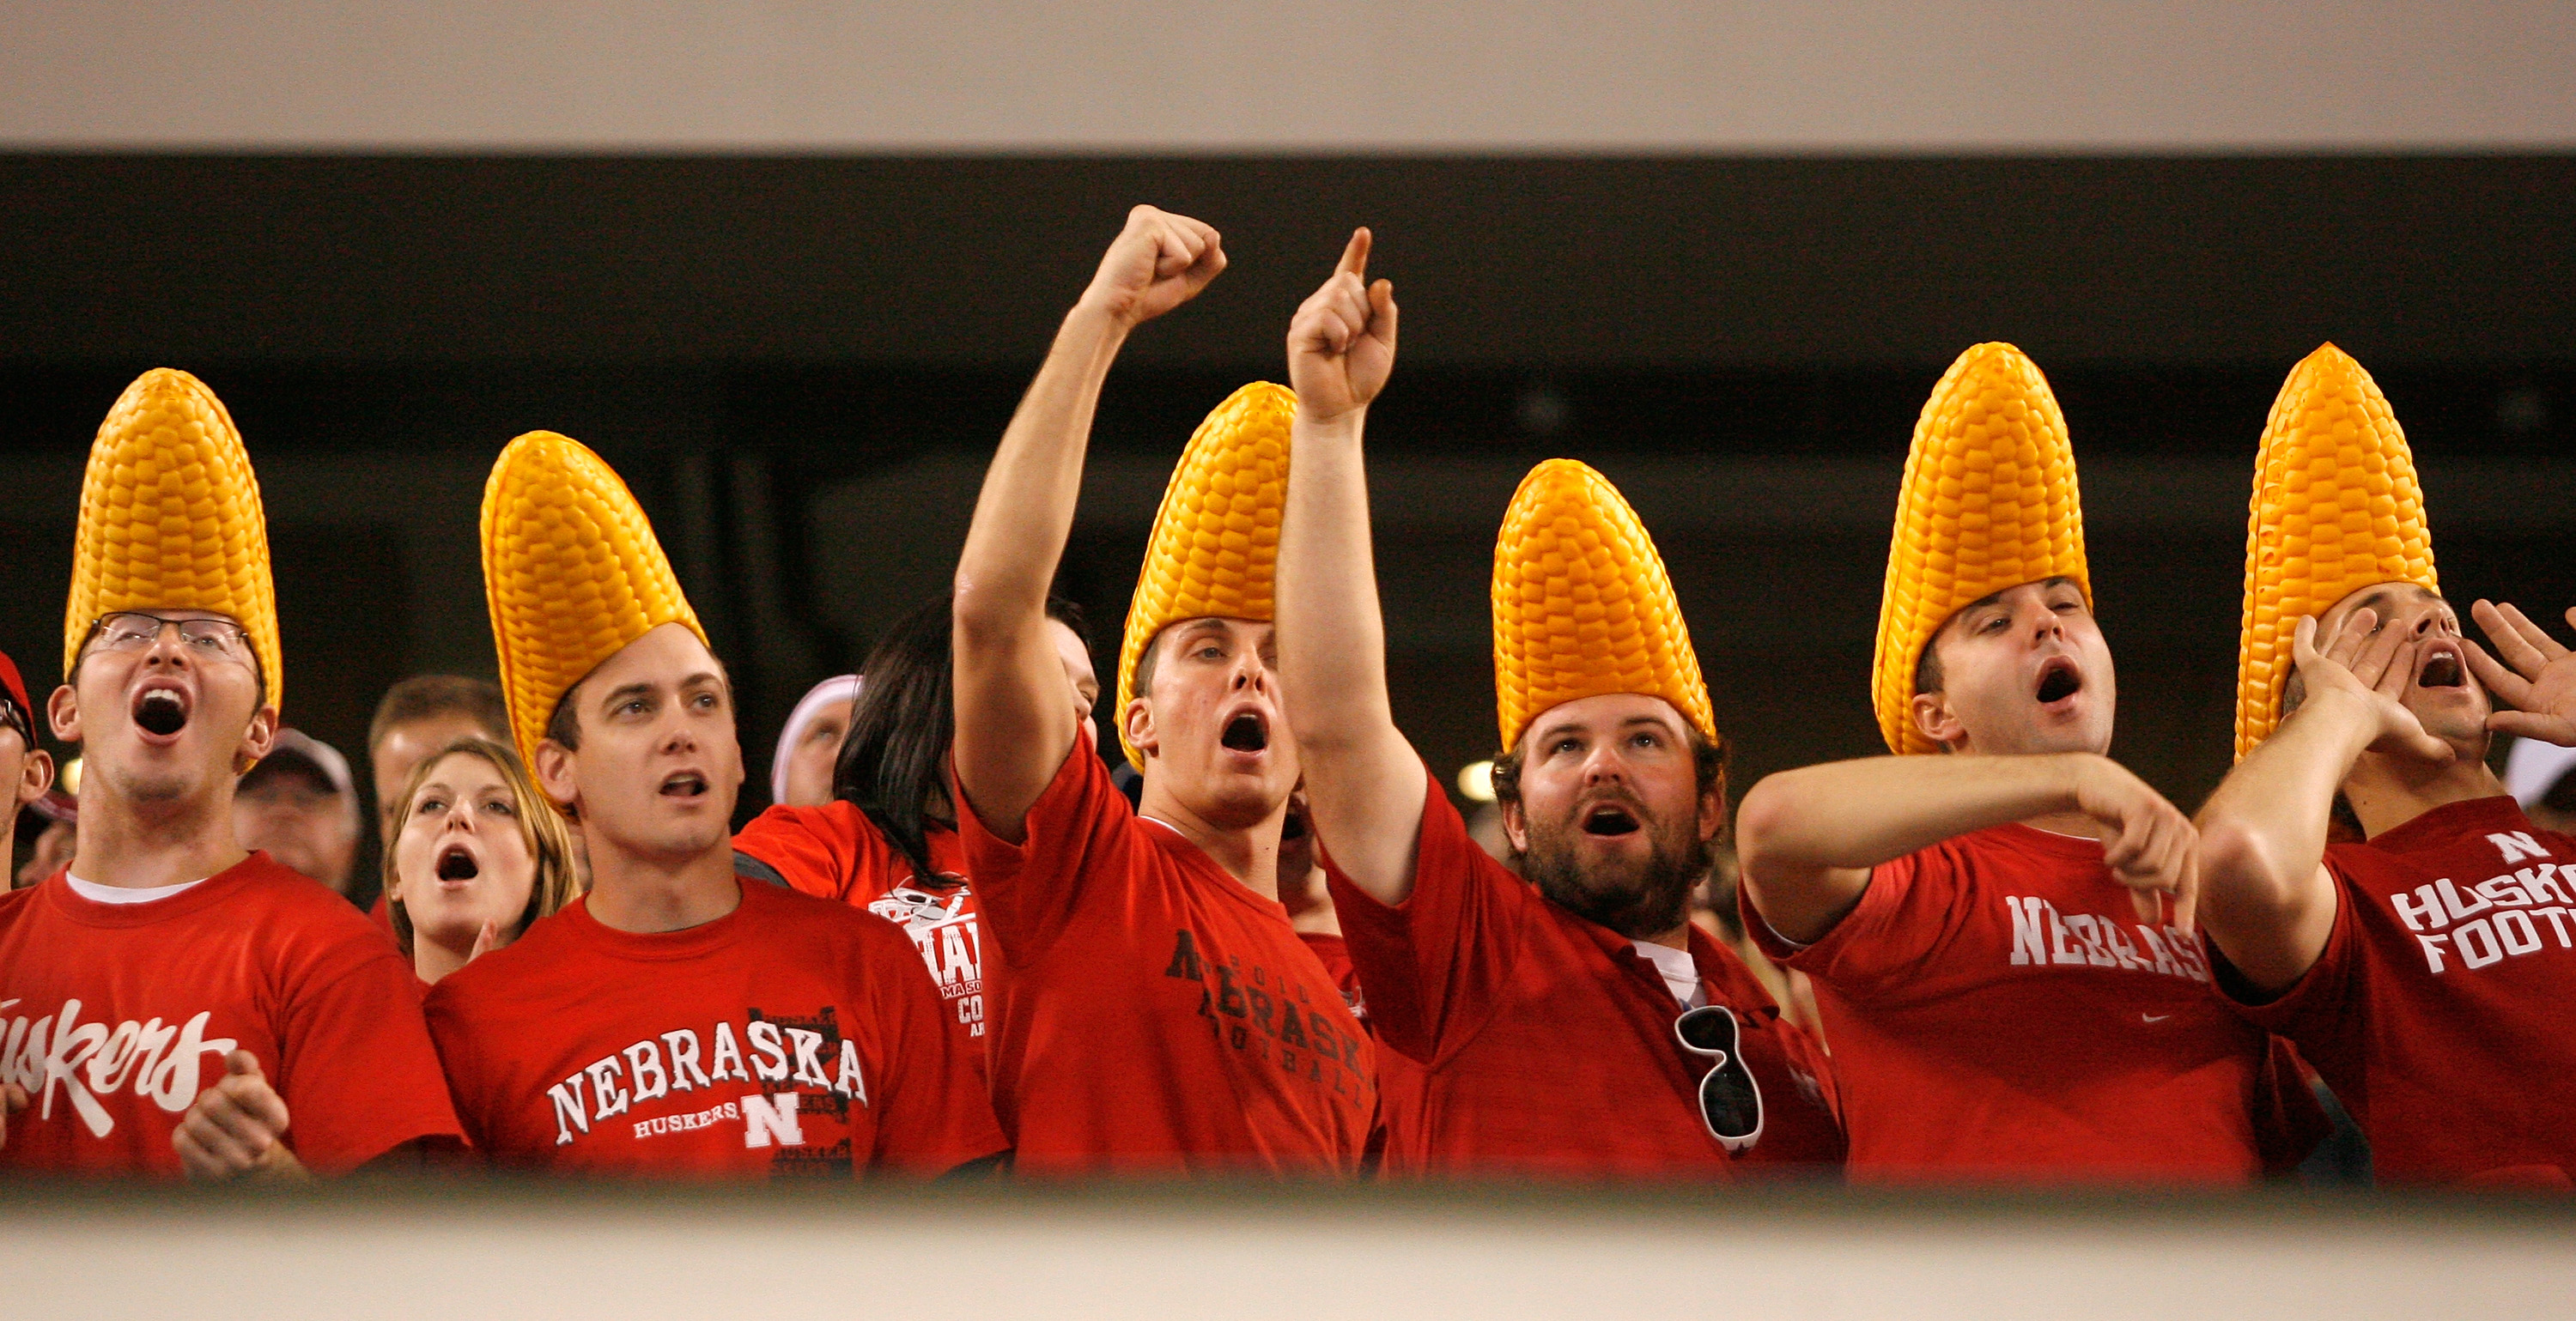 ARLINGTON, TX - DECEMBER 04:  Nebraska Cornhusker fans cheer on their team against the Oklahoma Sooners at Cowboys Stadium on December 4, 2010 in Arlington, Texas. The Sooners beat the Cornhuskers 23-20.  (Photo by Tom Pennington/Getty Images)